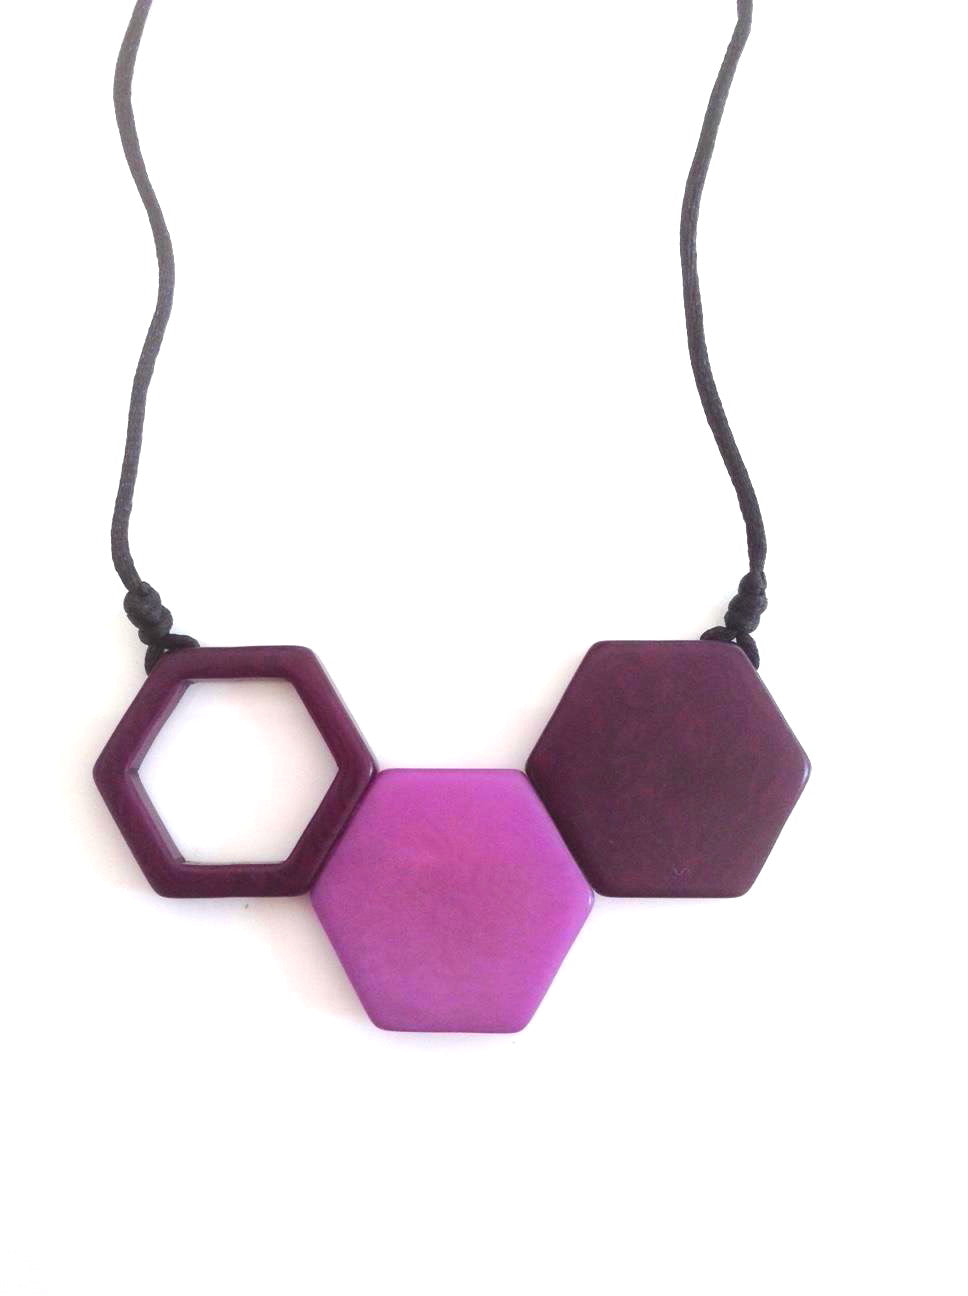 Rombos Necklace - Purple Dark Tones